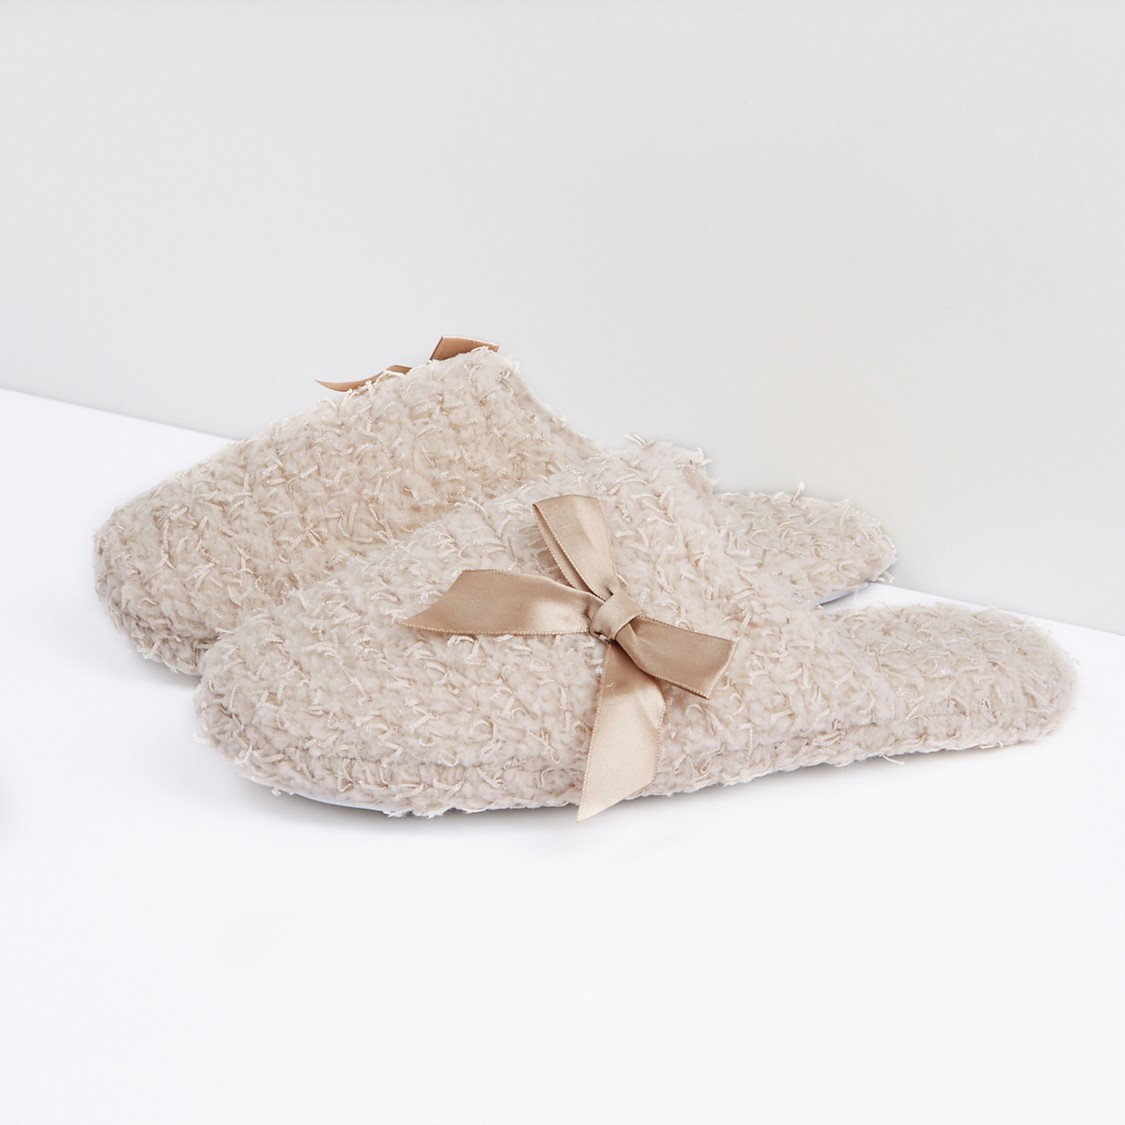 Textured Bedroom Slides with Bow Detail